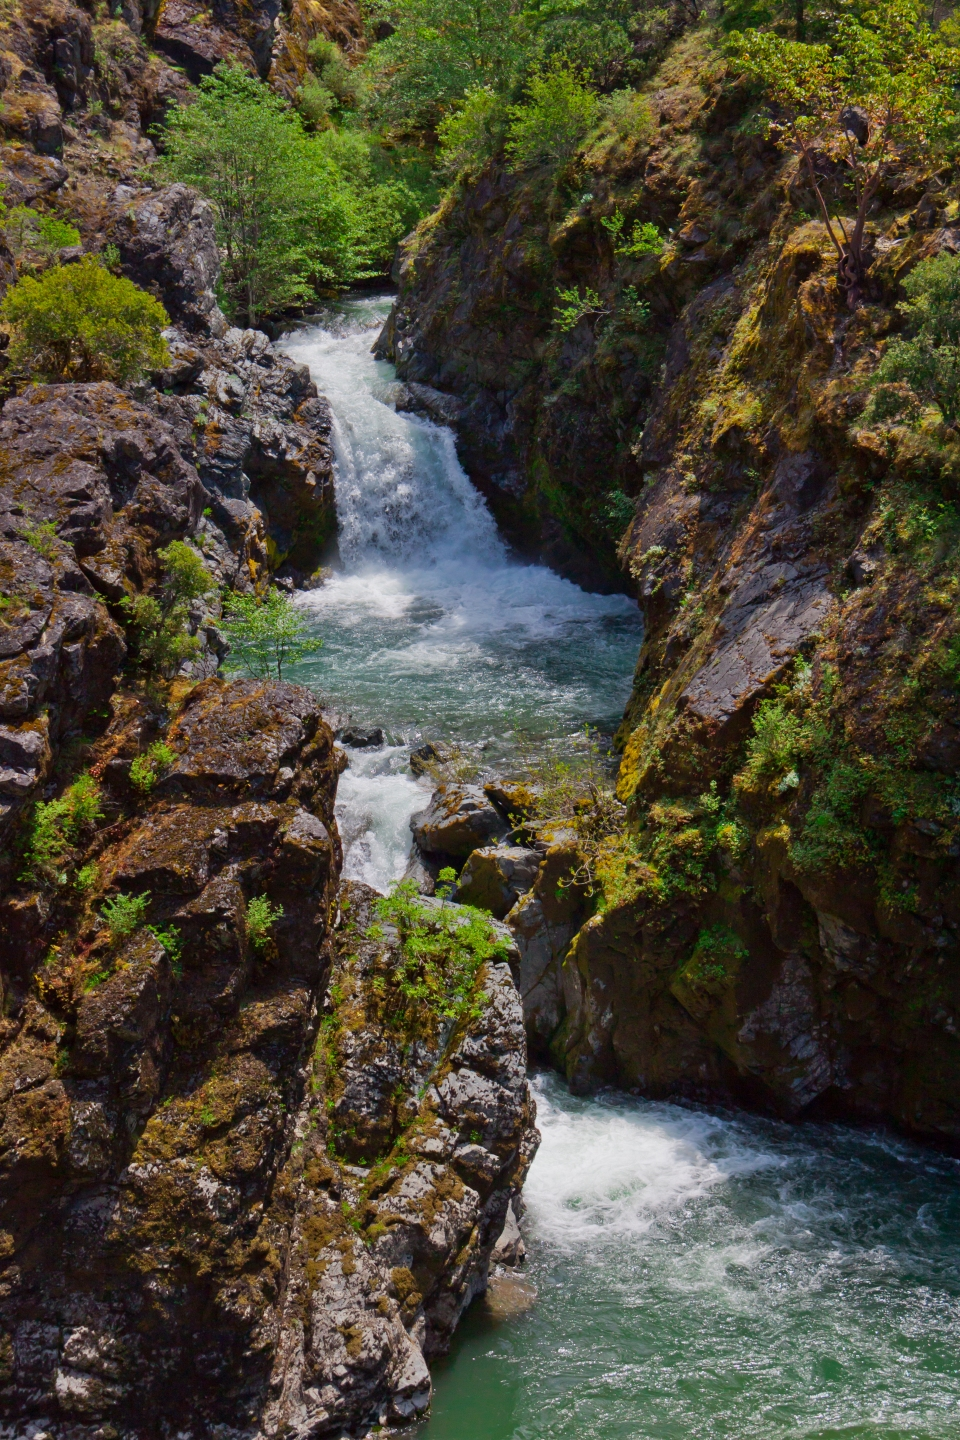 Or-Rogue River Wilderness-Rogue River Trail-Mule Creek Canyon